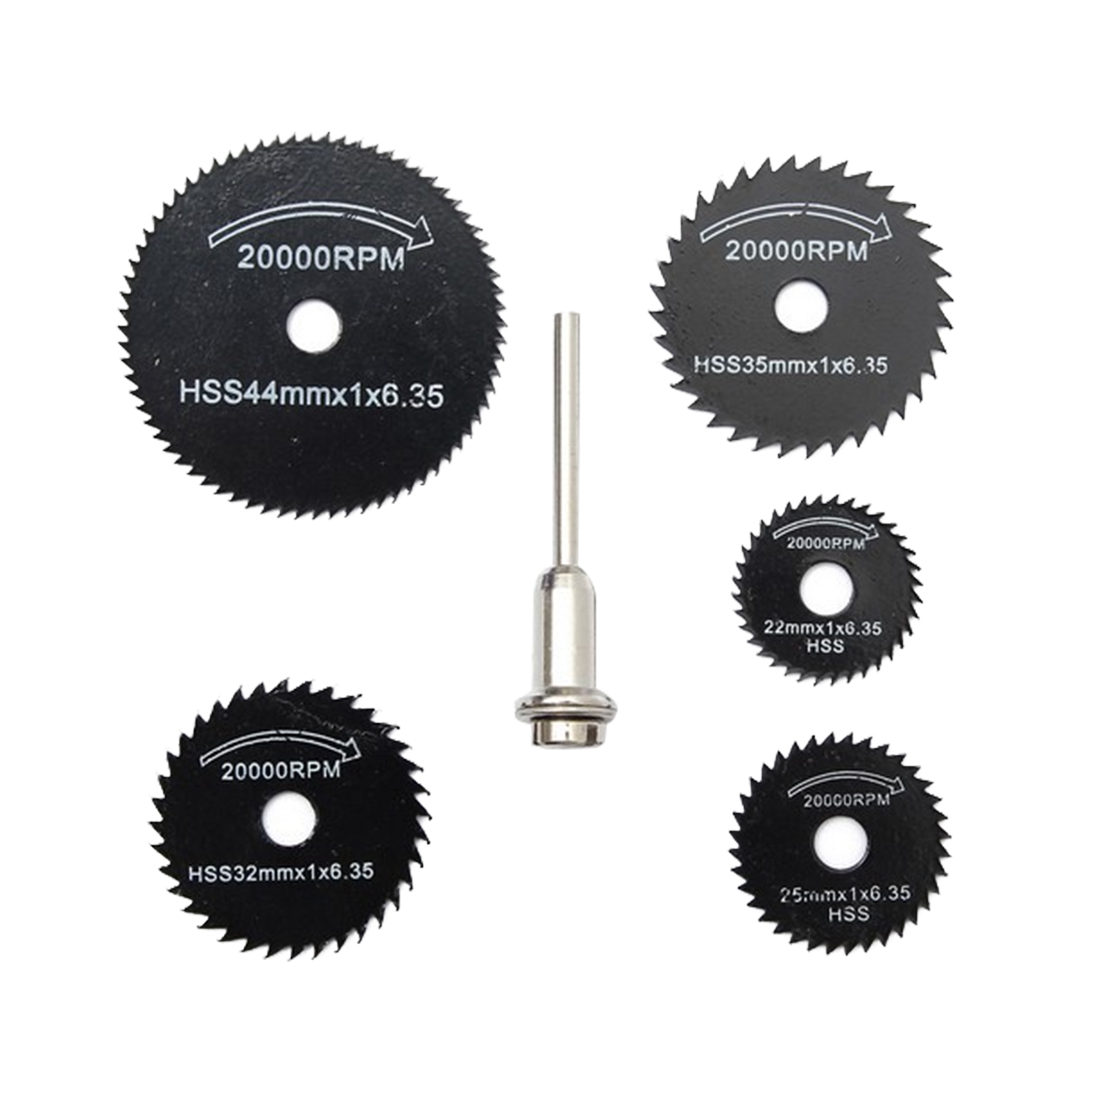 6pcs/set Mini HSS Circular Saw Blade Rotary Tool For Wood Cutting Discs Drill Mandrel Cutoff Dremel  Metal Cutter Power Tool Set